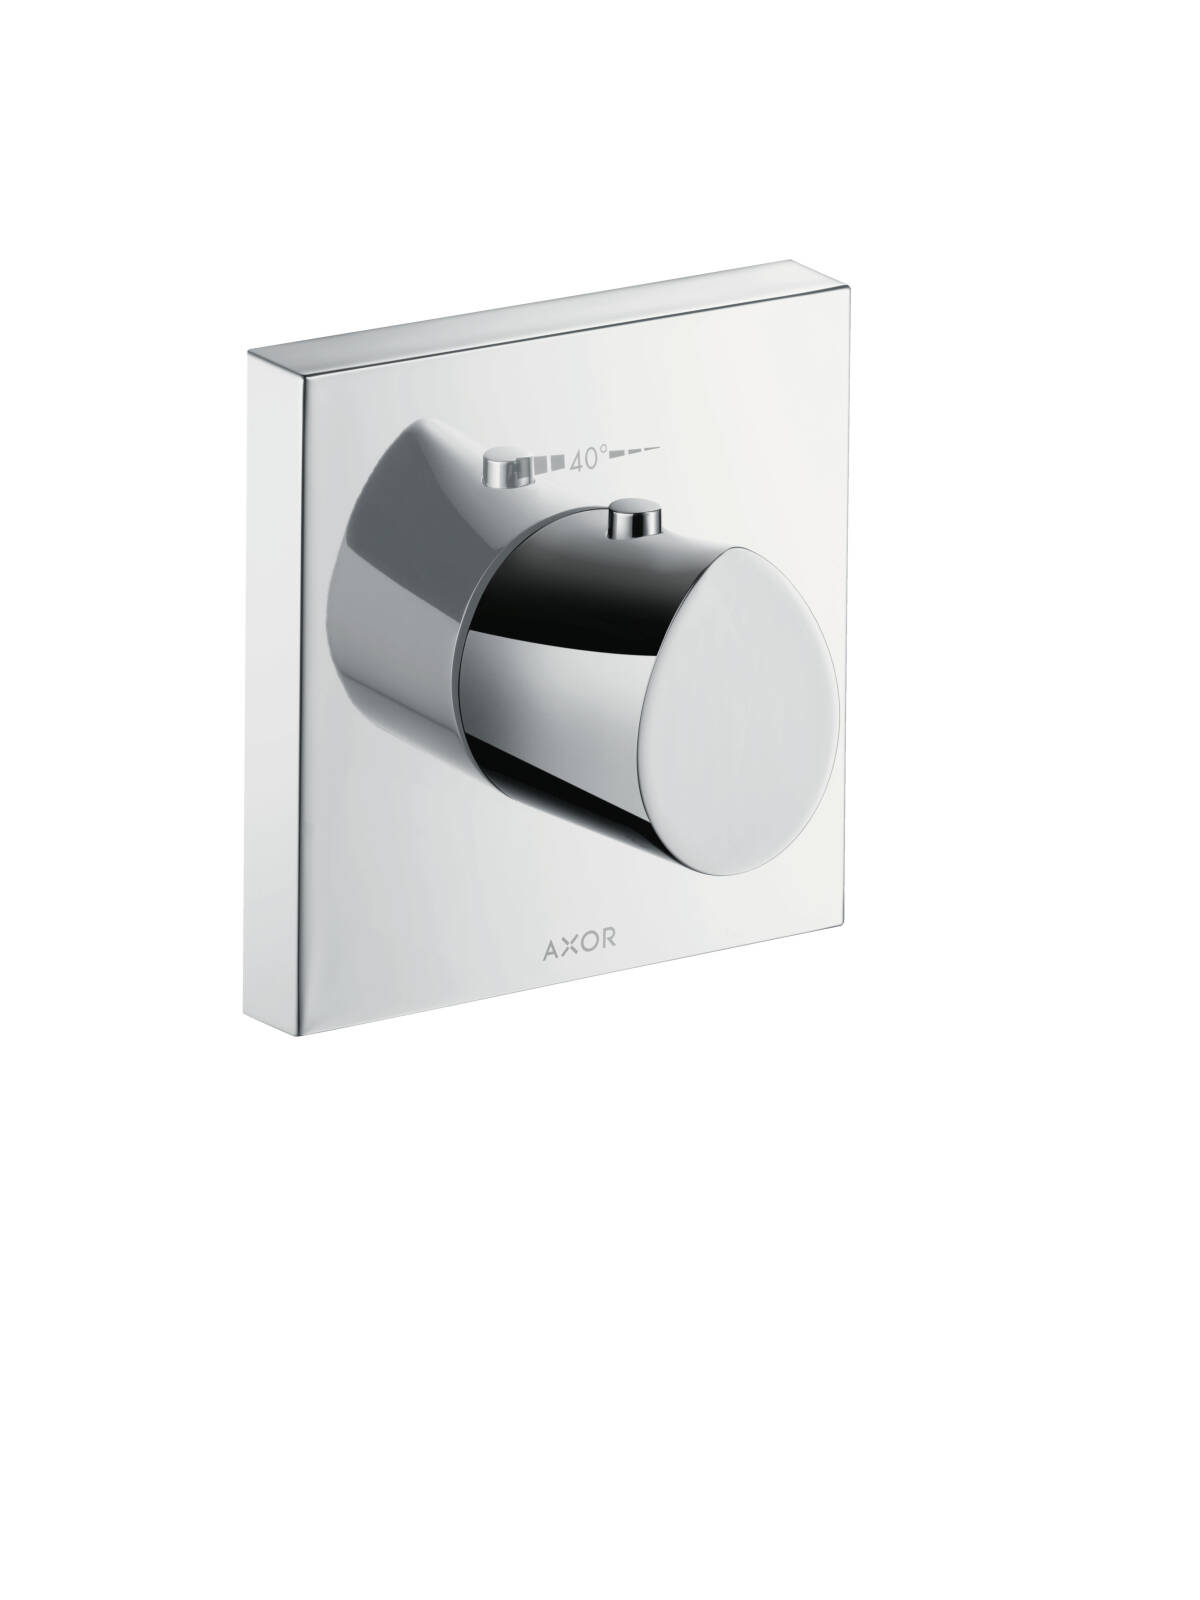 Thermostatic mixer highflow 120/120 for concealed installation, Stainless Steel Optic, 12712800